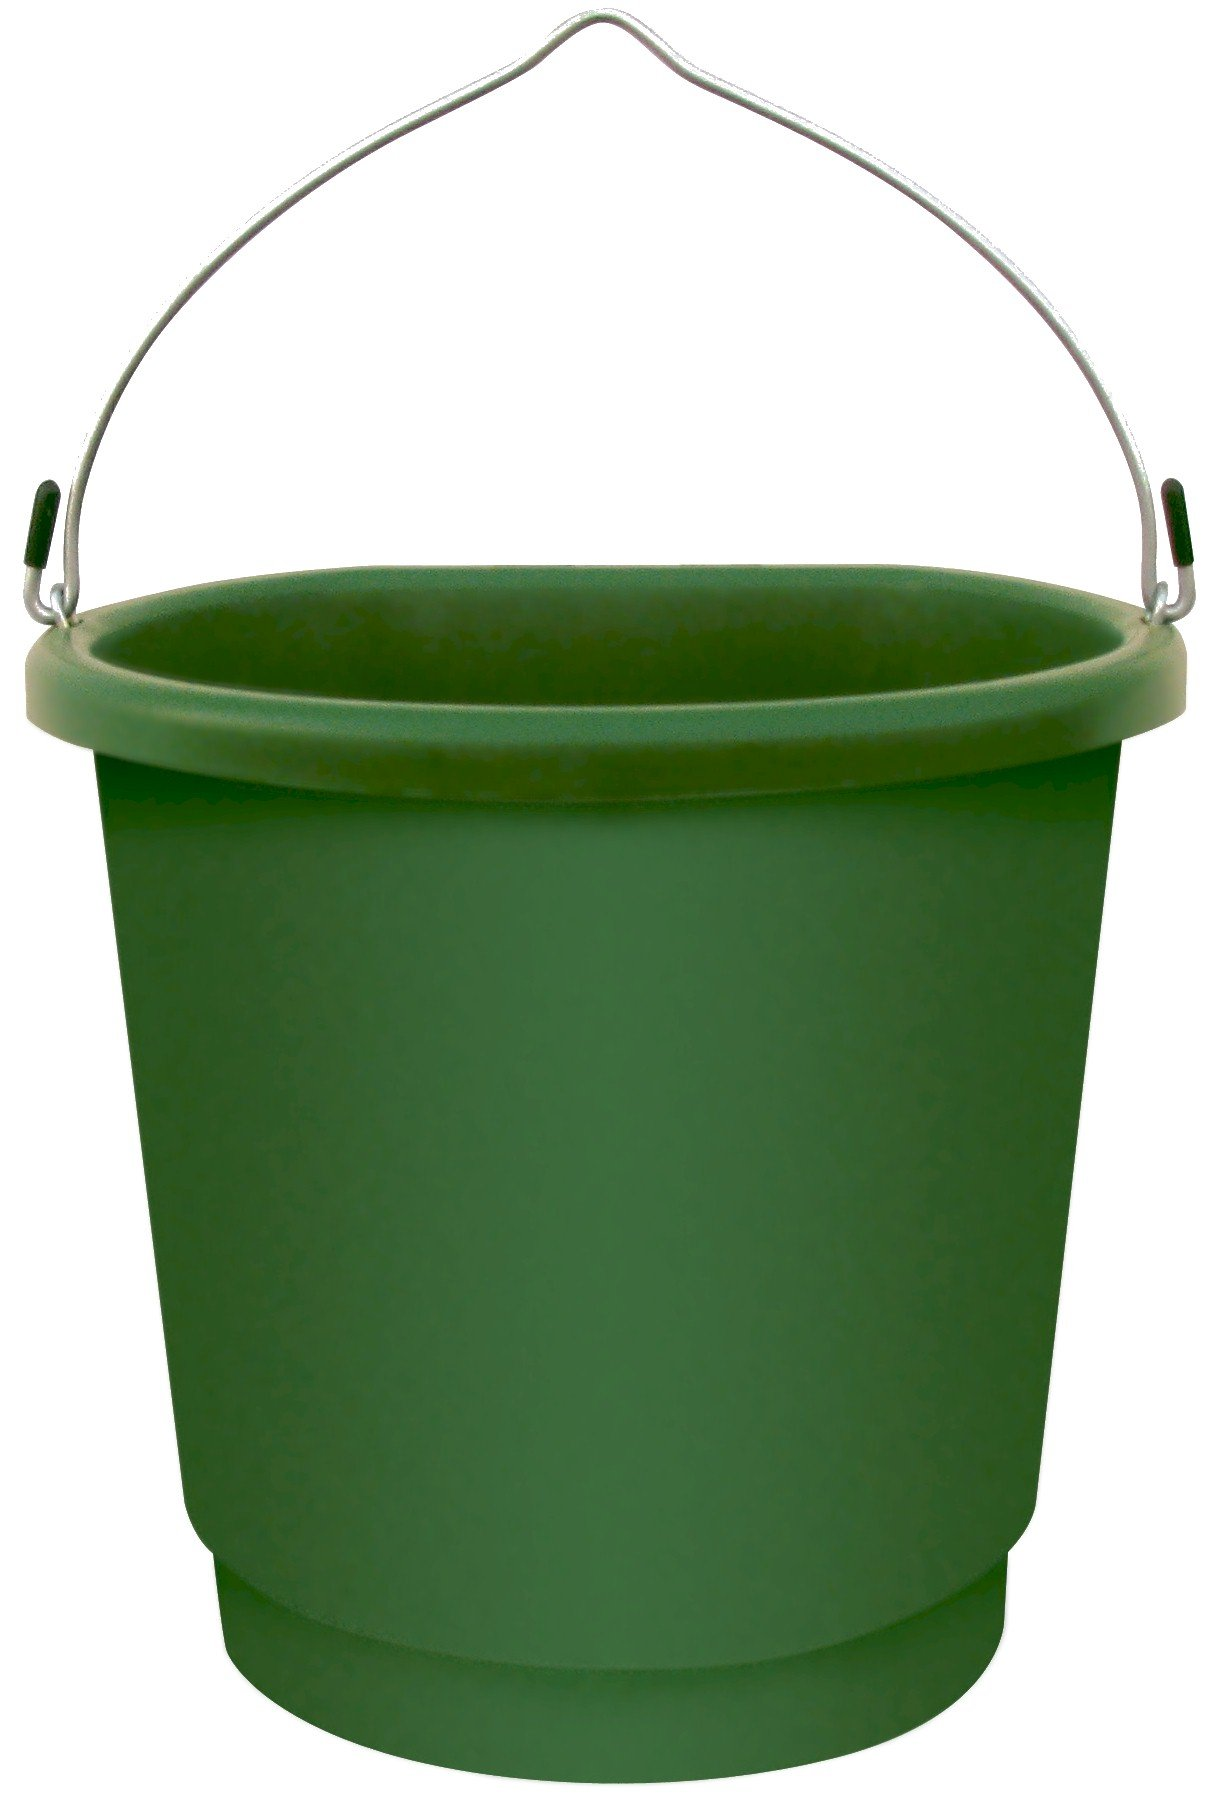 Farm Innovators Model FB-80 3-Gallon Flat-Back Heated Bucket, 70-Watt